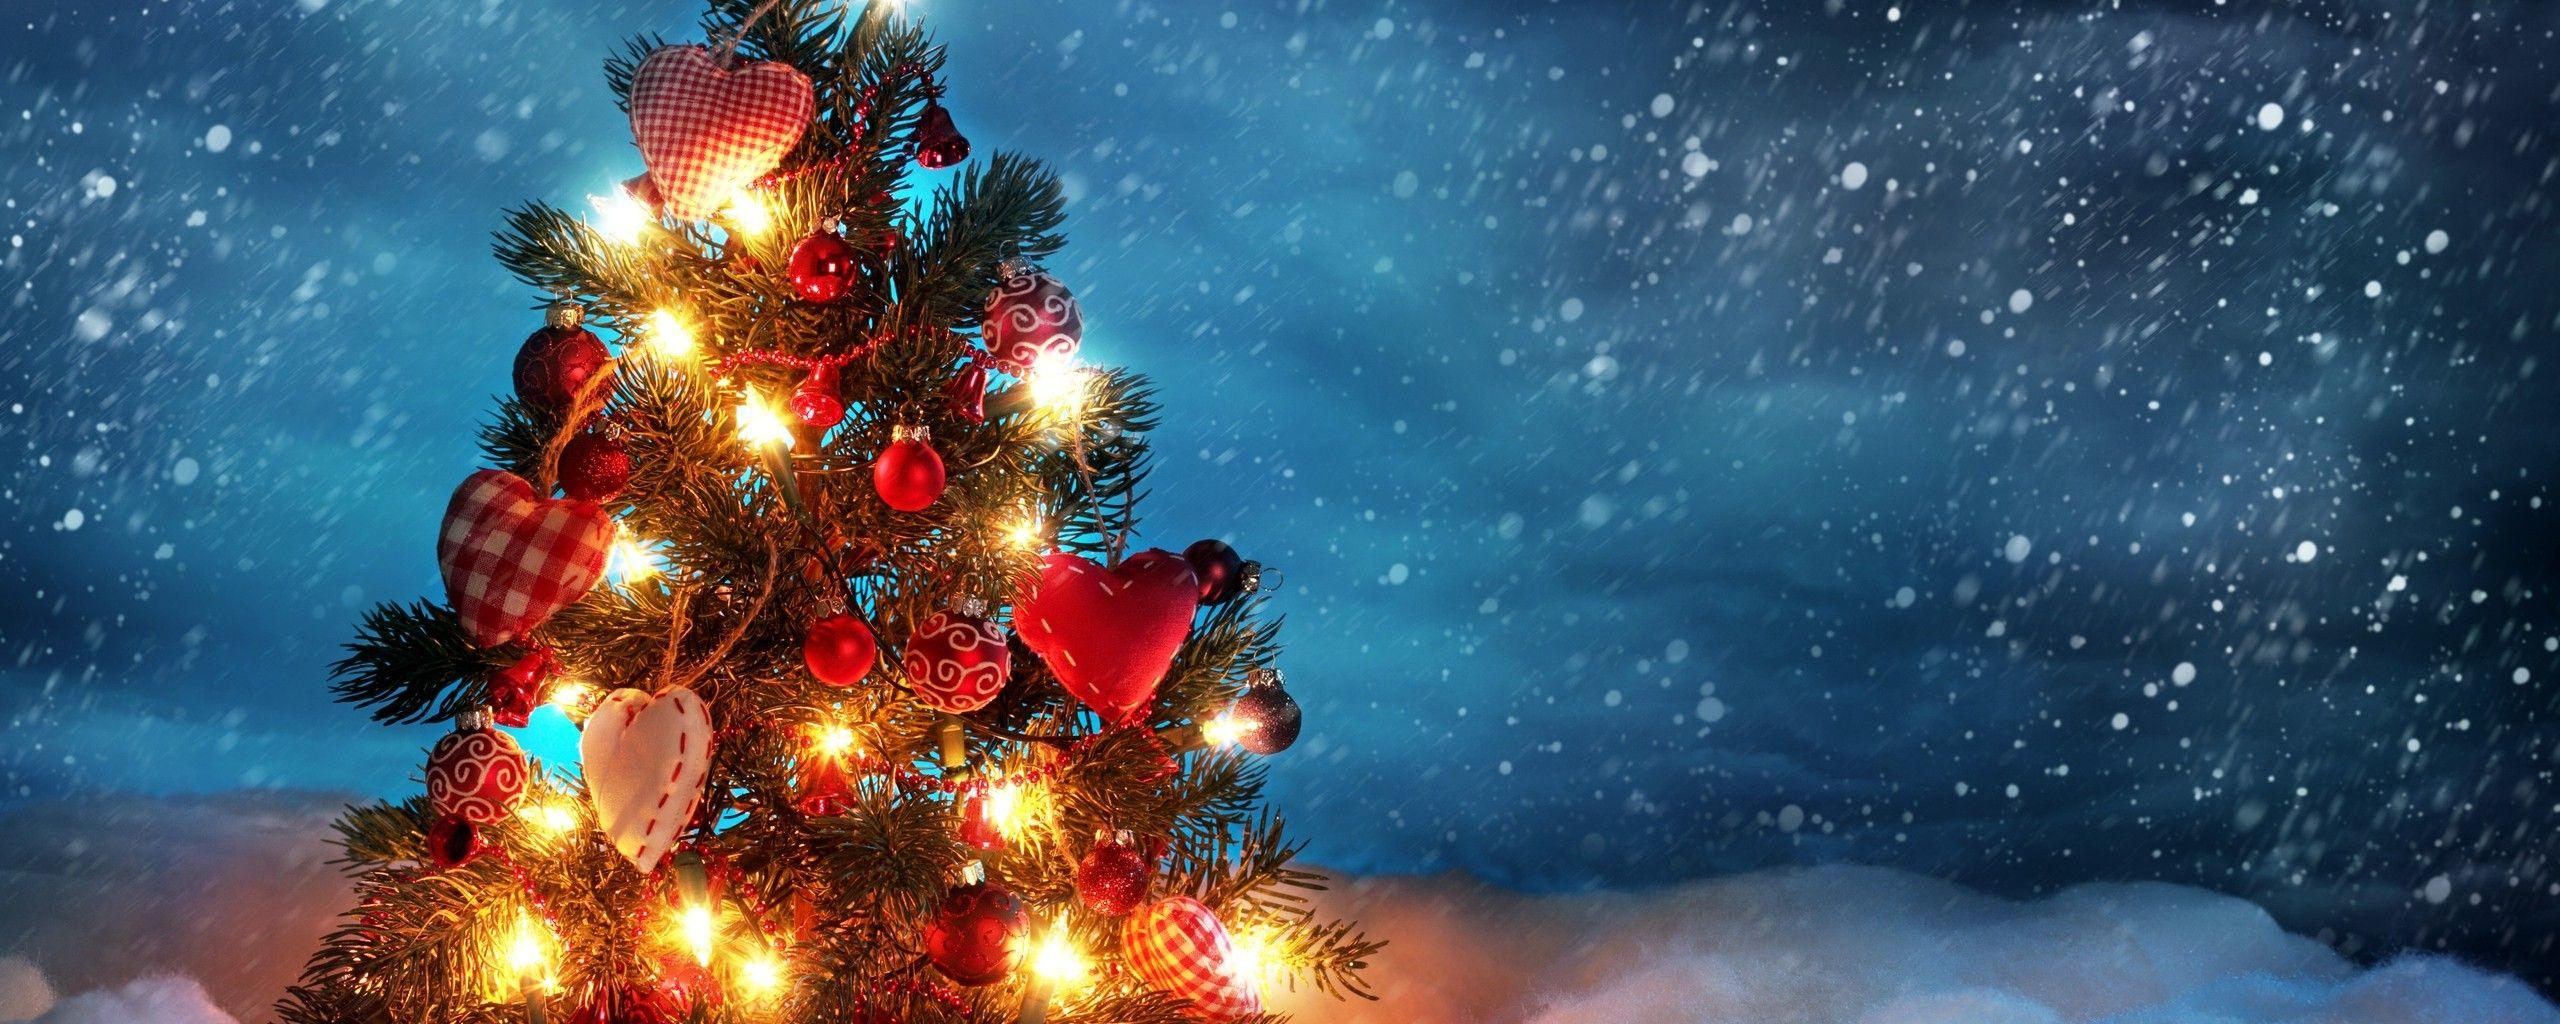 Download Dual Screen Christmas Wallpaper Hd Backgrounds